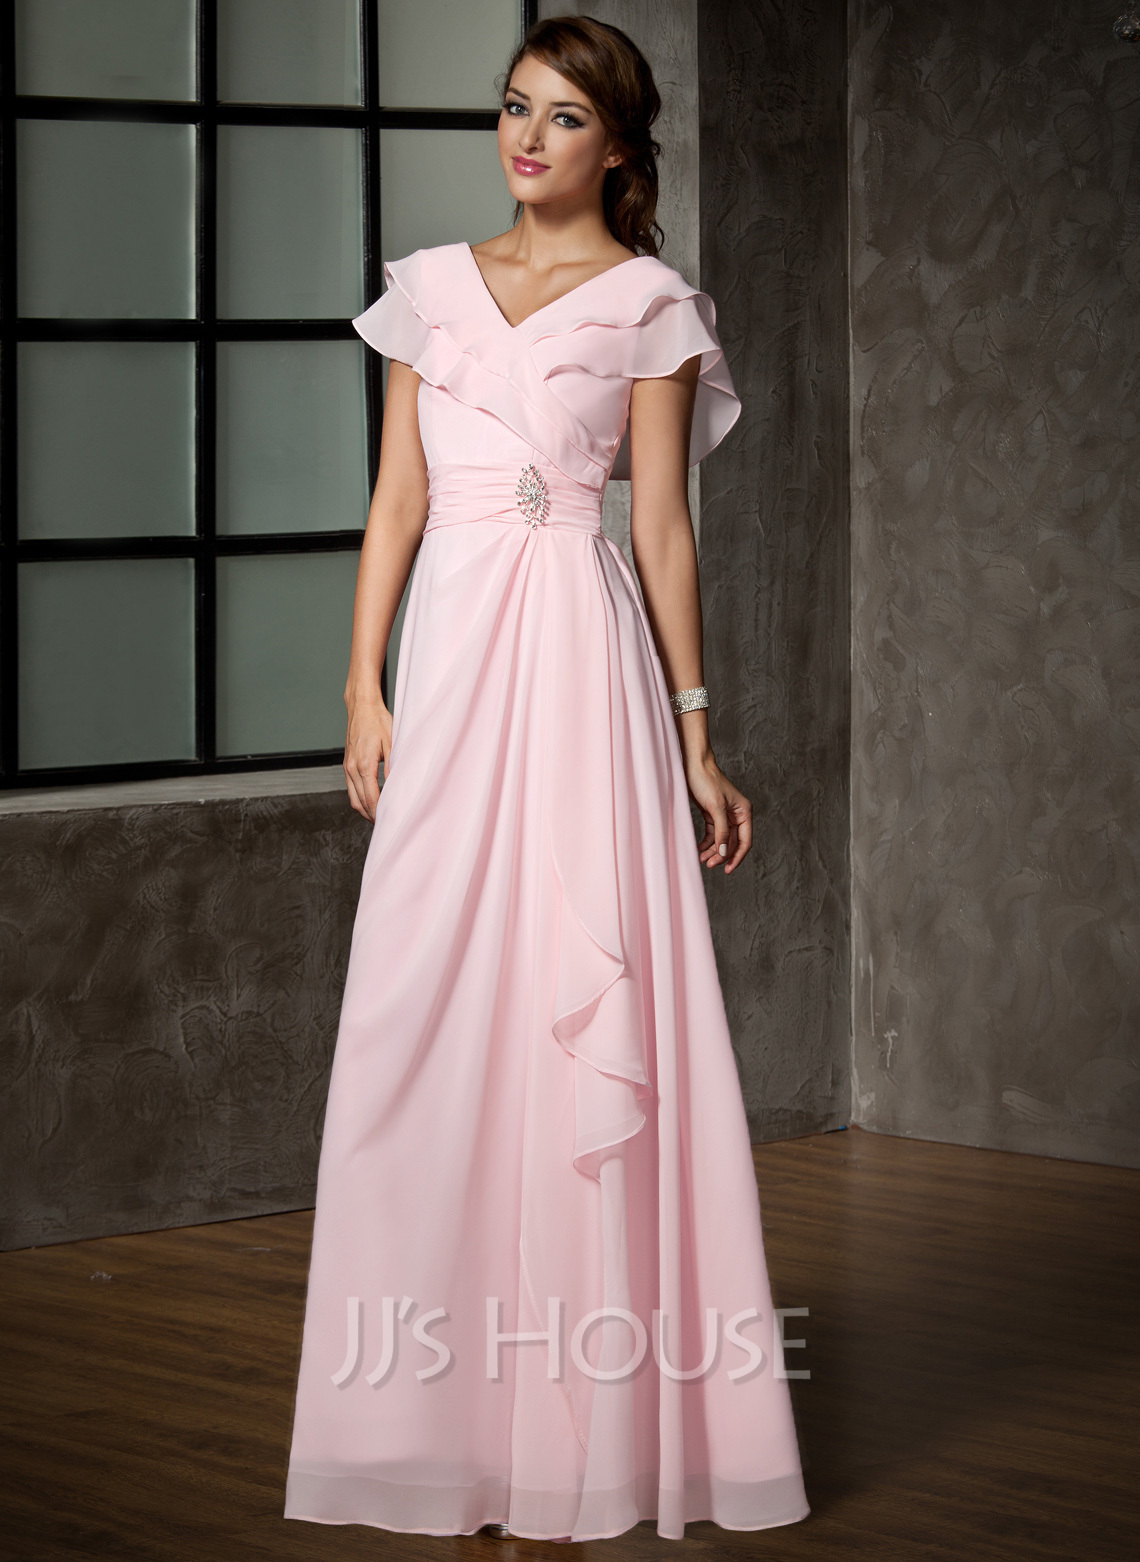 b564286ac04 A-Line Princess V-neck Floor-Length Chiffon Mother of the Bride. Loading  zoom